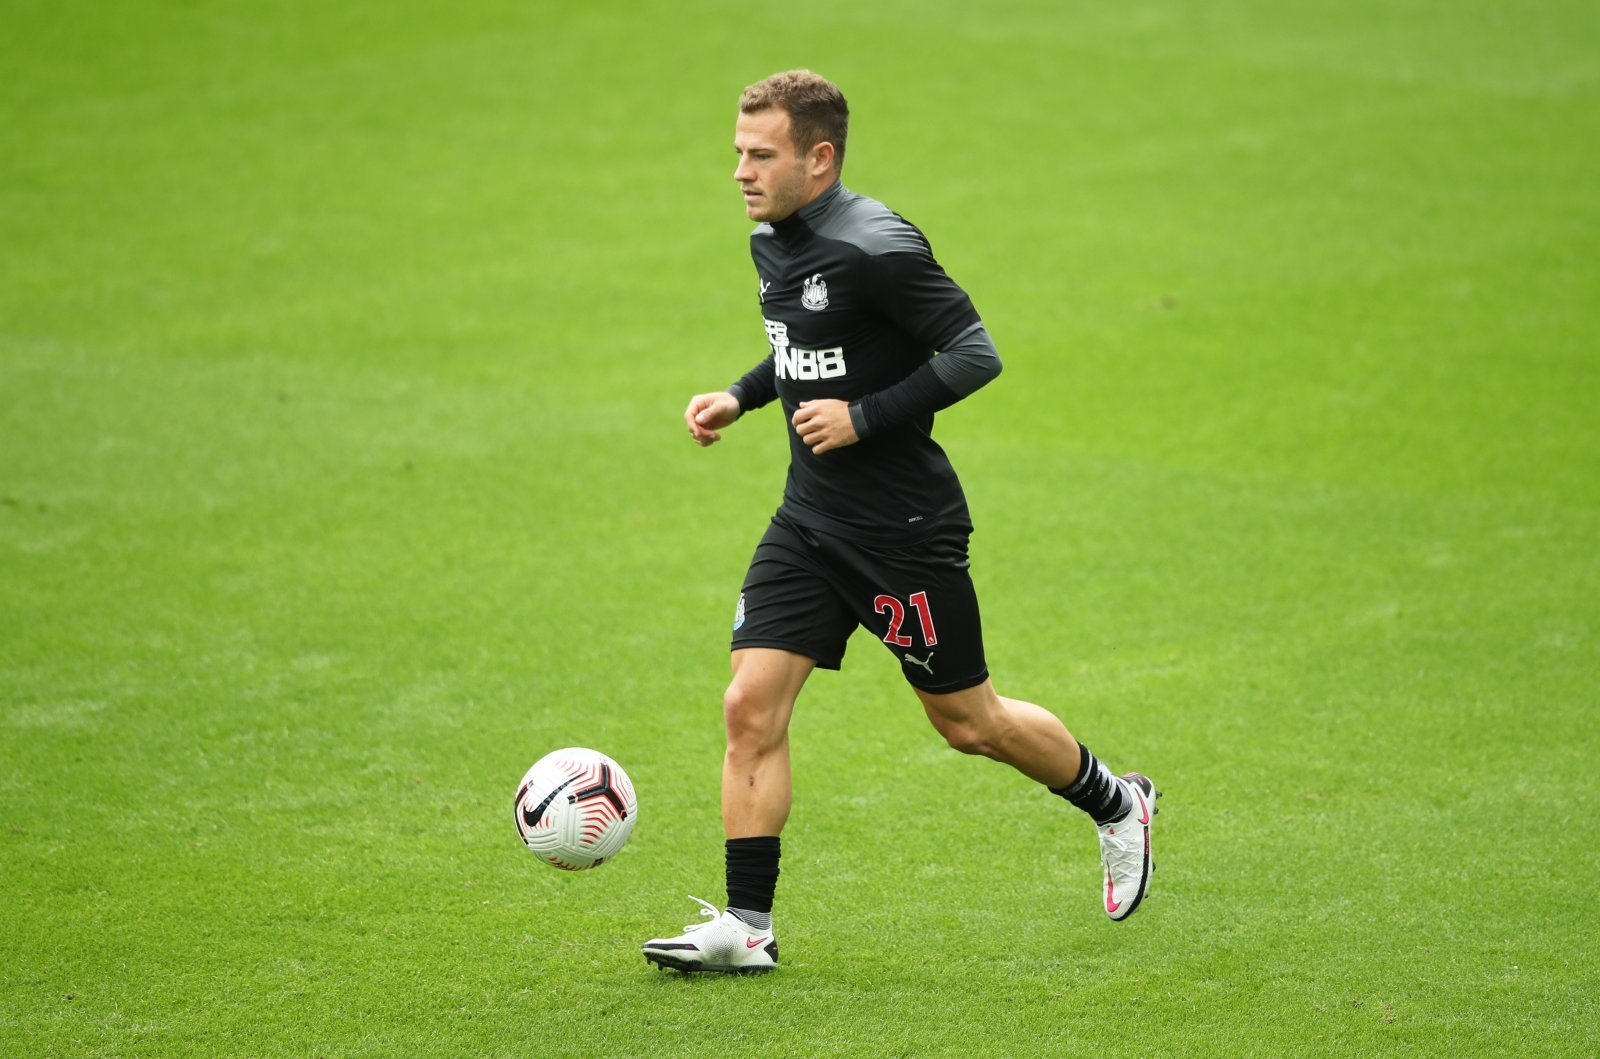 newcastle-uniteds-ryan-fraser-warms-up